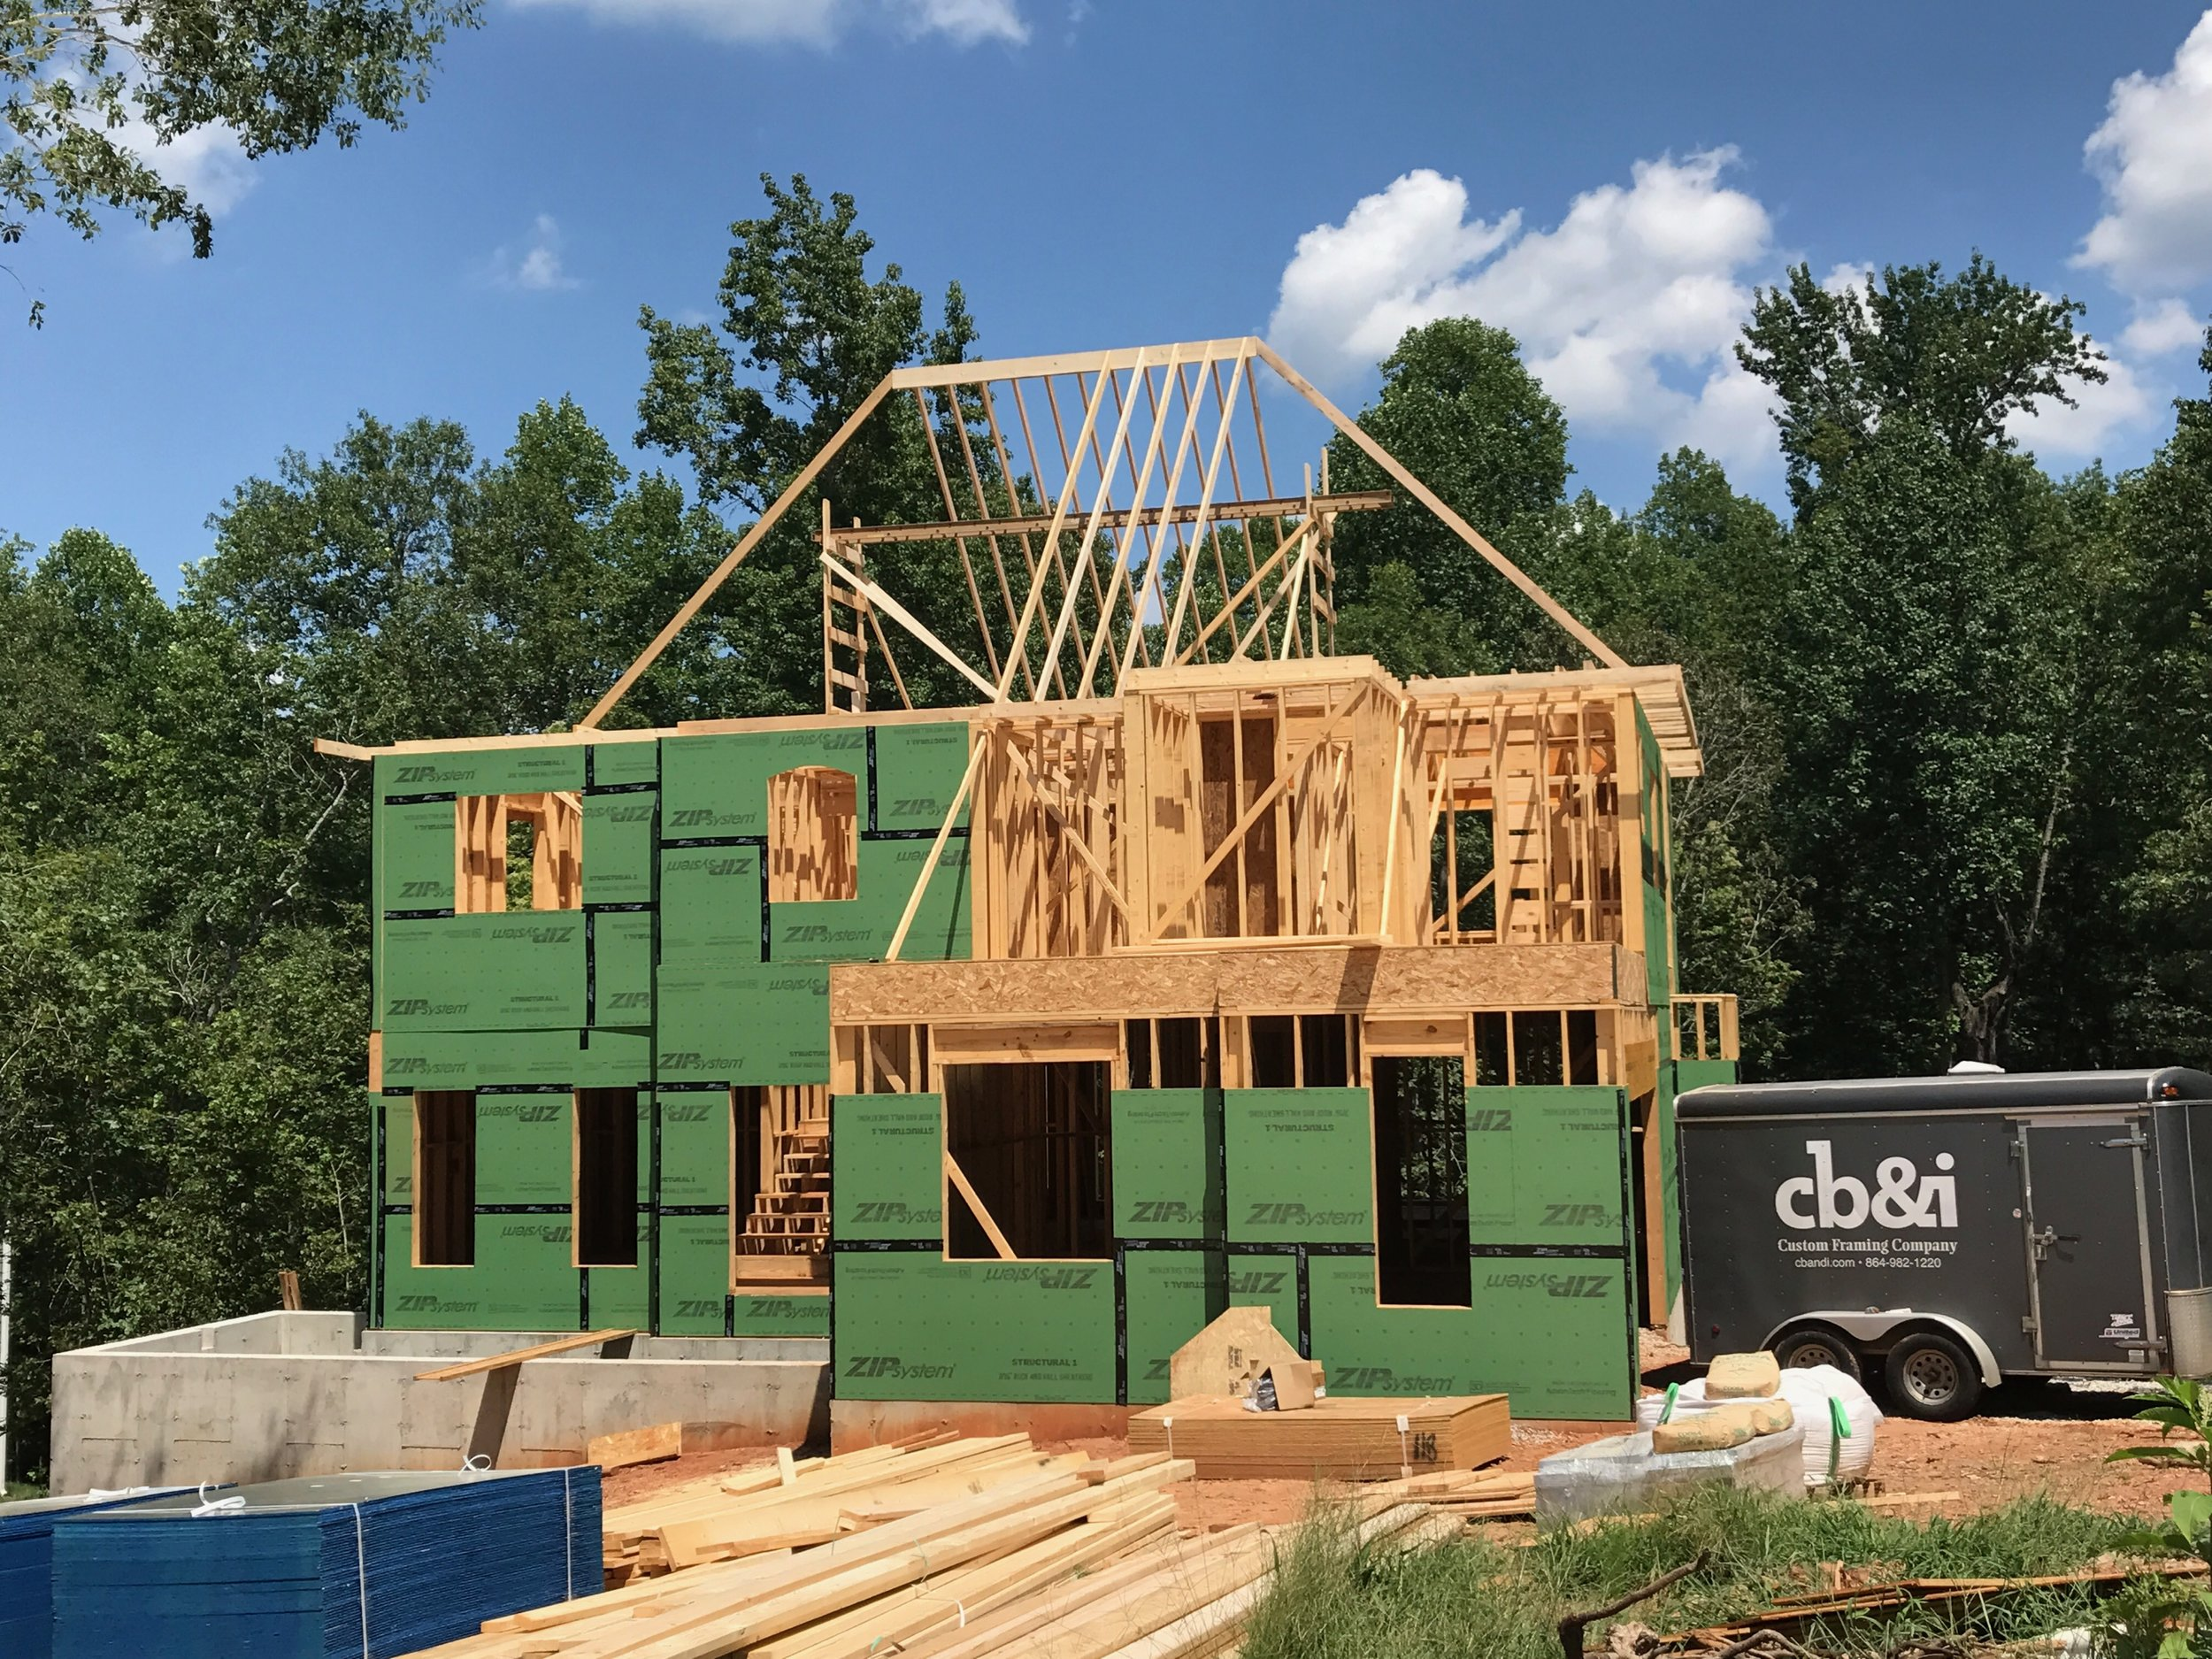 Second Floor walls complete, ceiling system installed, and the 1st ridge is up in the air!